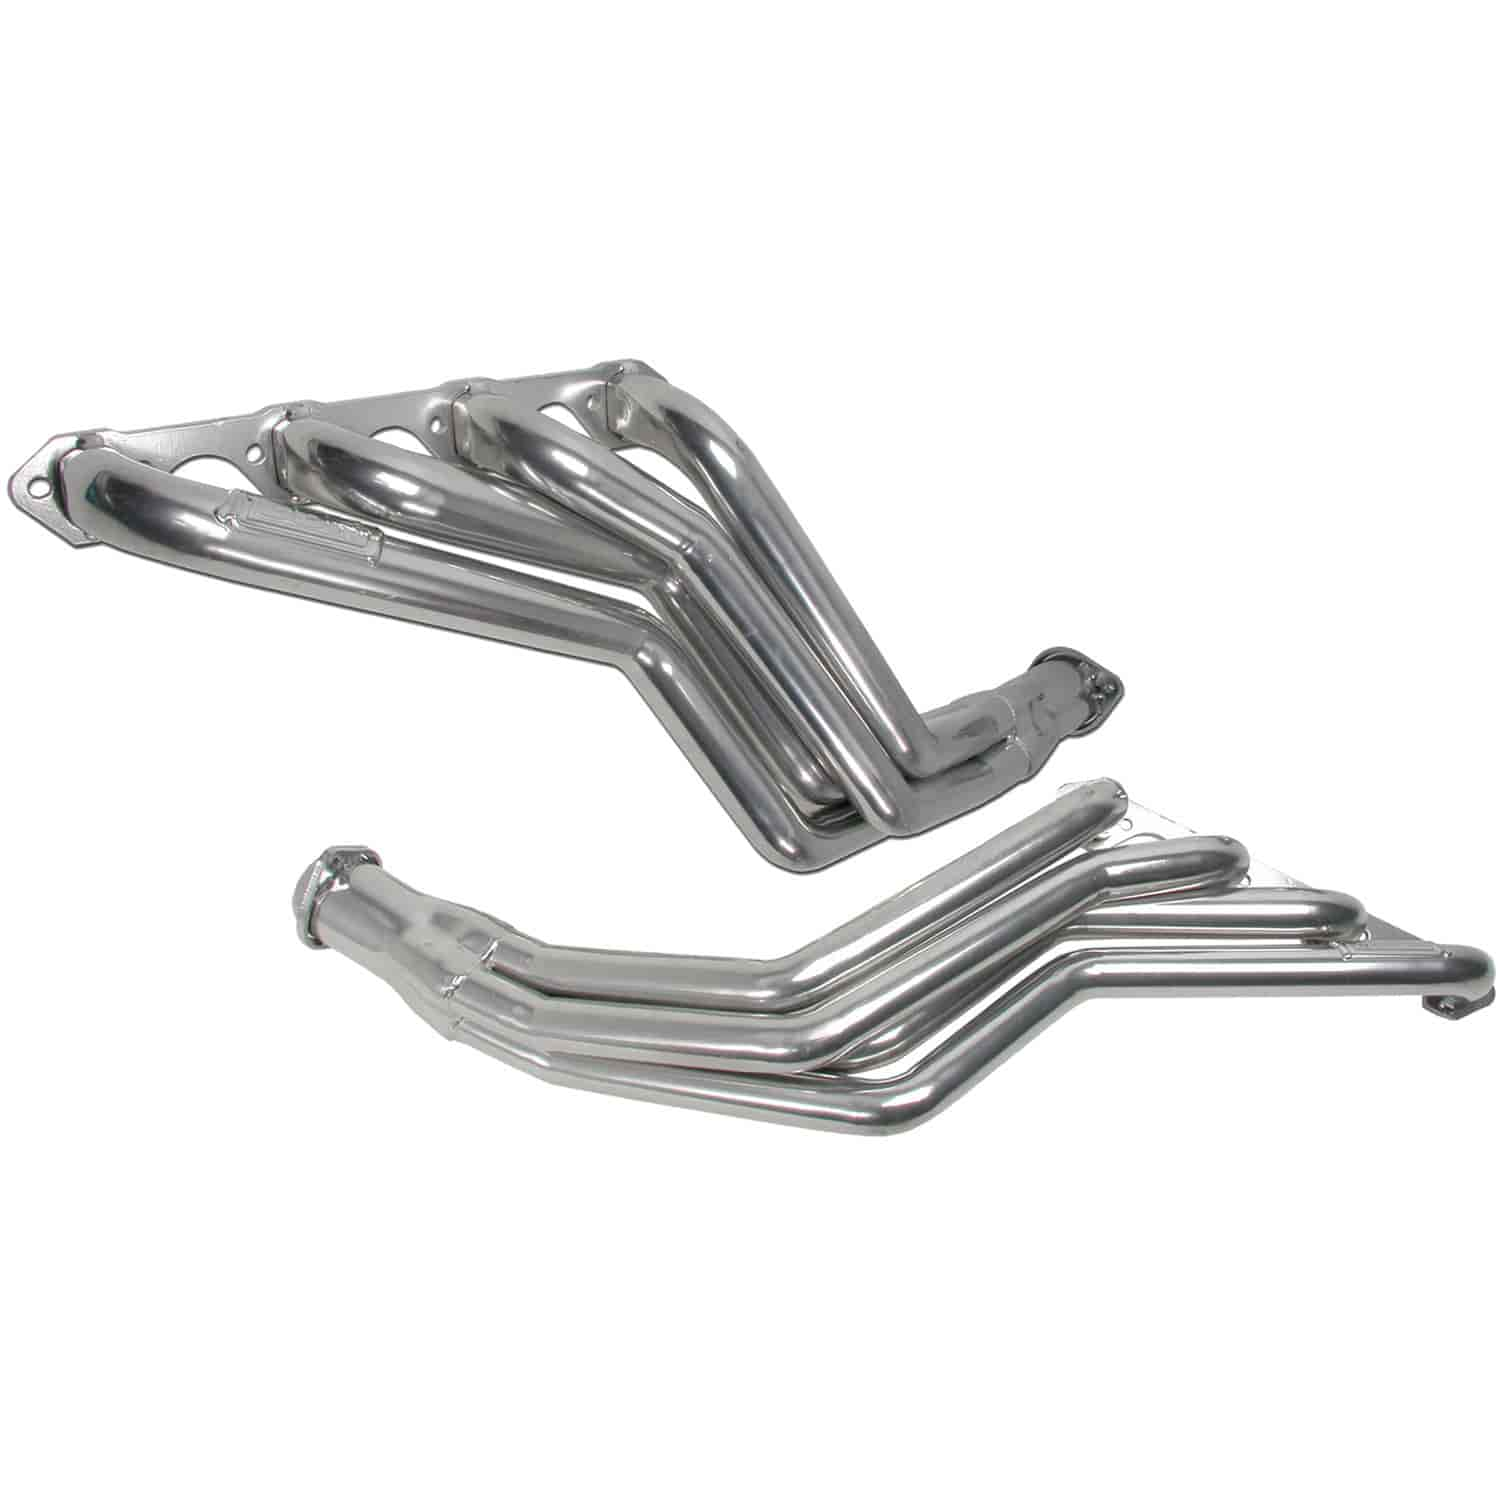 BBK Performance Products 15160 - BBK Mustang Exhaust Headers